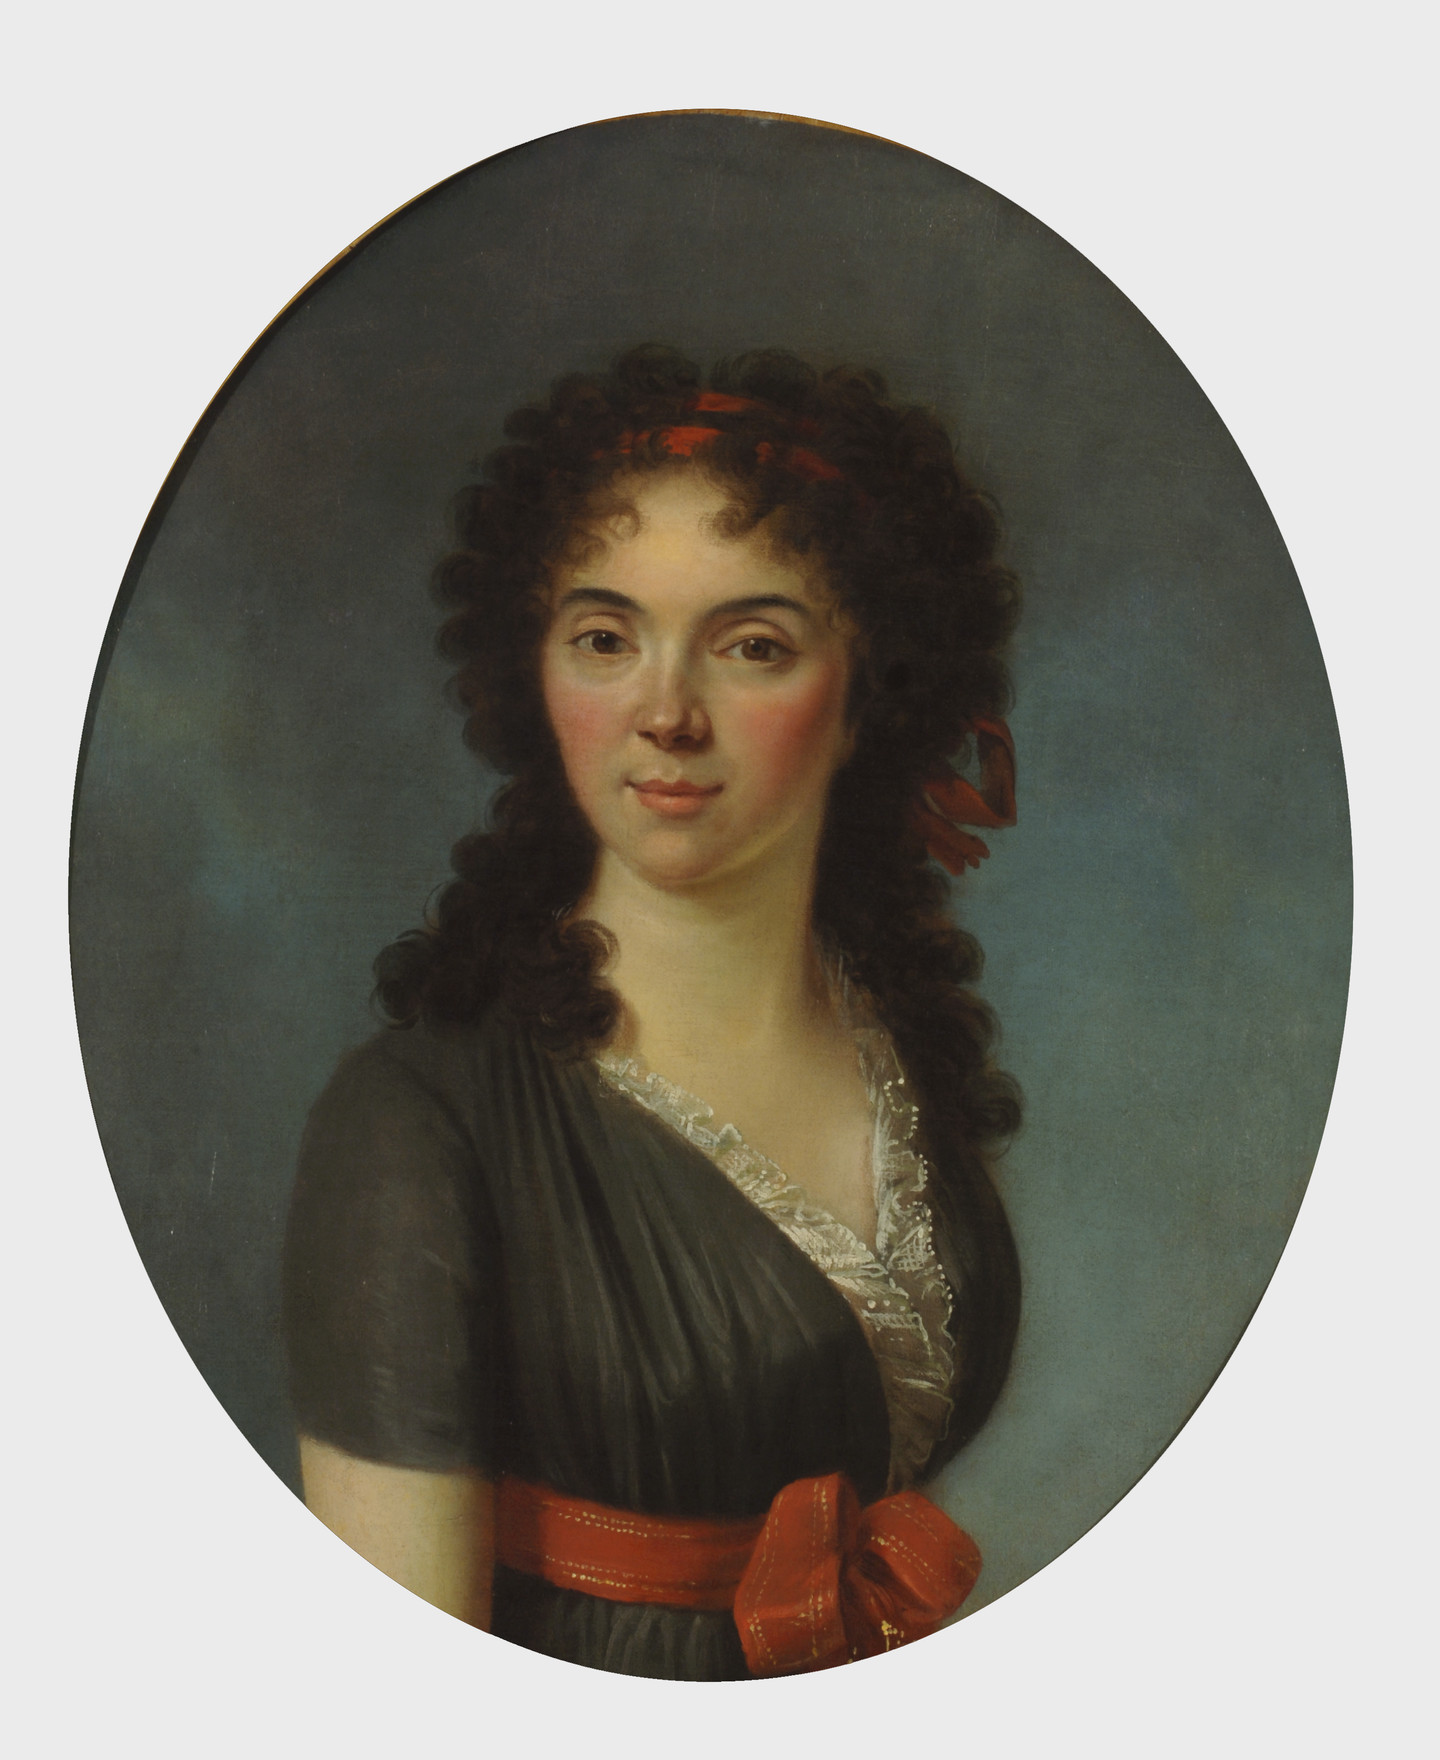 Oval portrait of a young woman with light skin gazes out at the viewer with her dark tousled curls framing her face and shoulders.